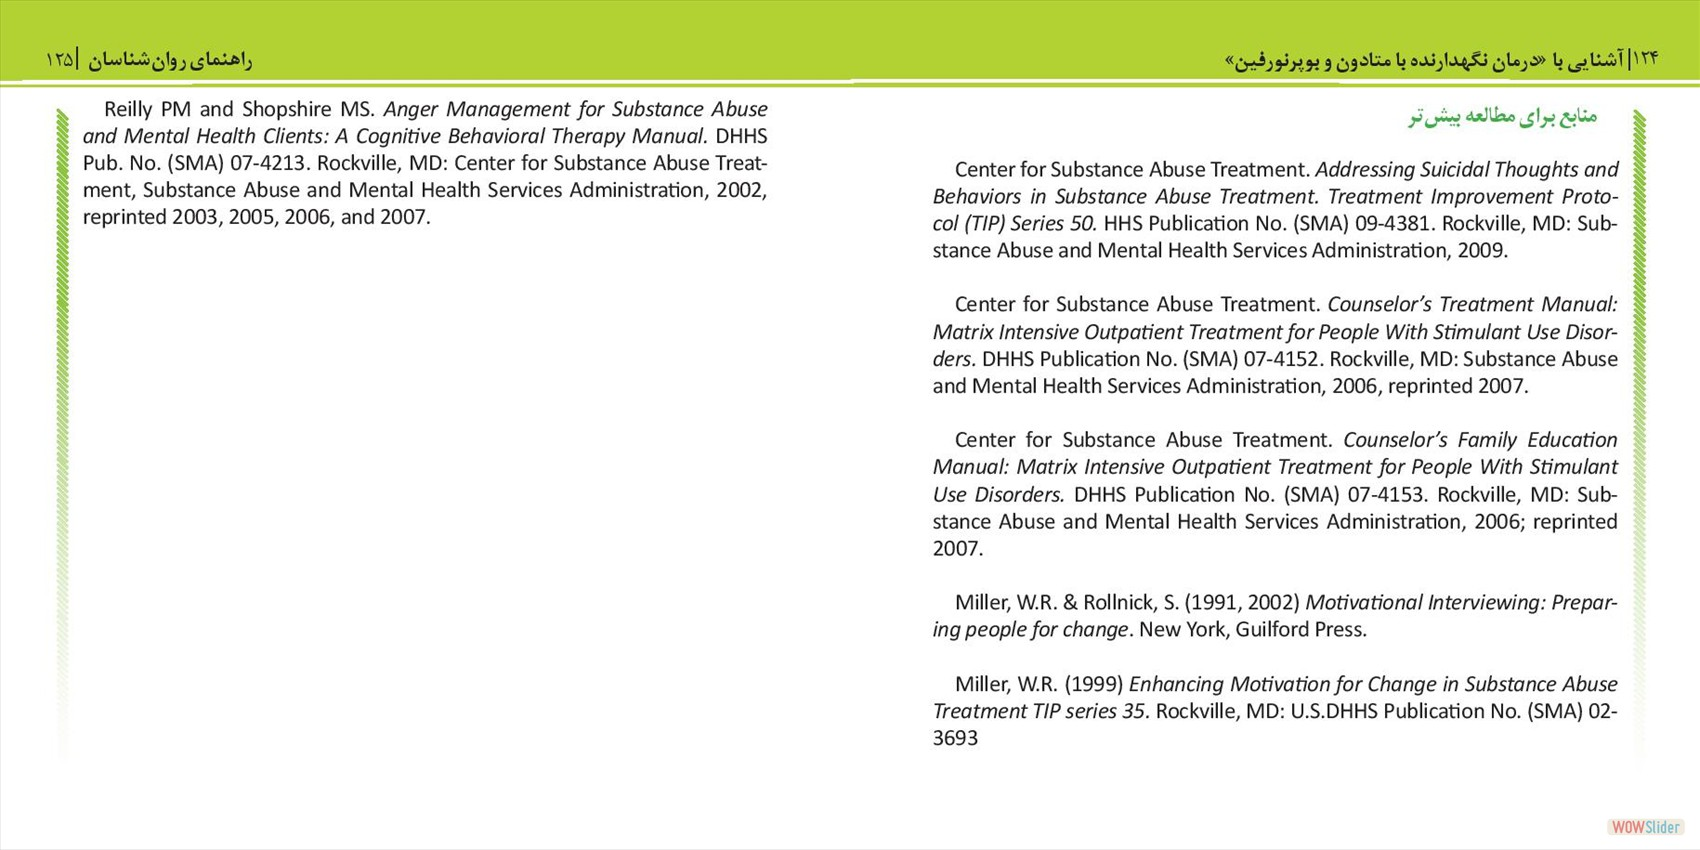 Psychologist_Booklet_farsi_low-page-069